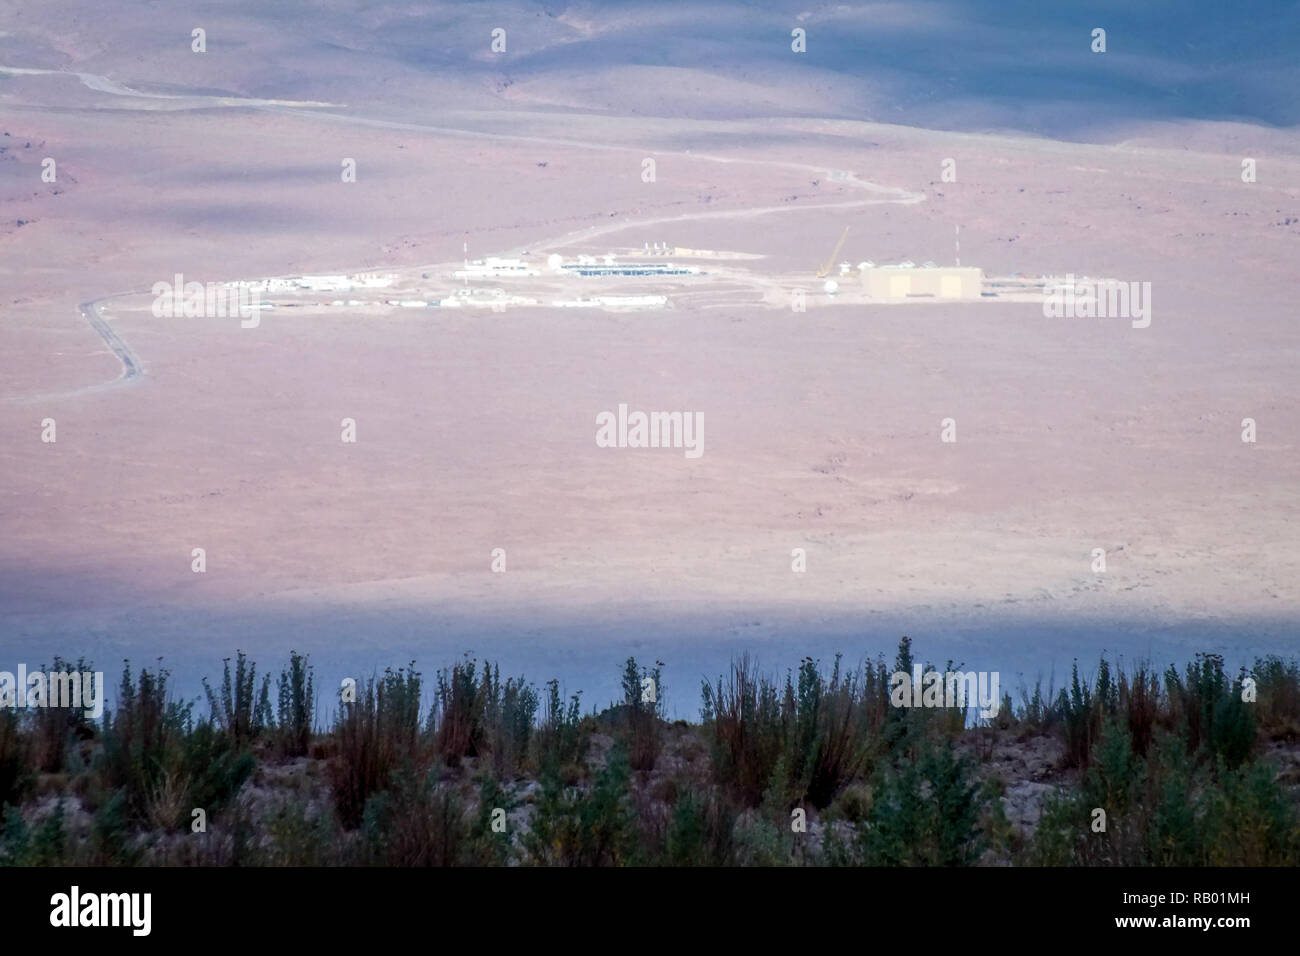 View of the salines in the Atacama desert. Amazing colorful landscape as background. - Stock Image